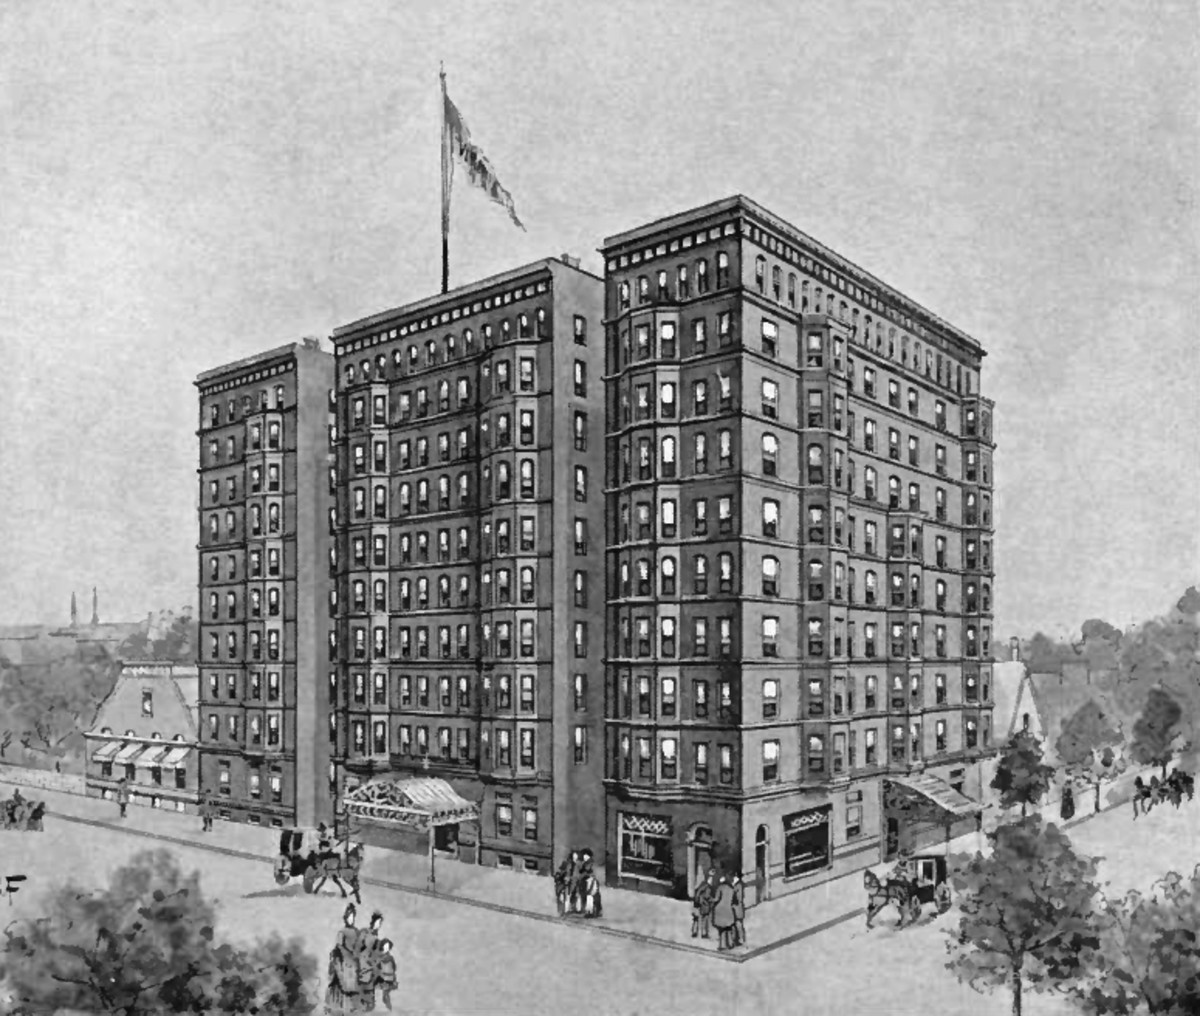 The Virginia Hotel (1889-90) at Rush and Ohio Streets, designed by Clinton J. Warren.